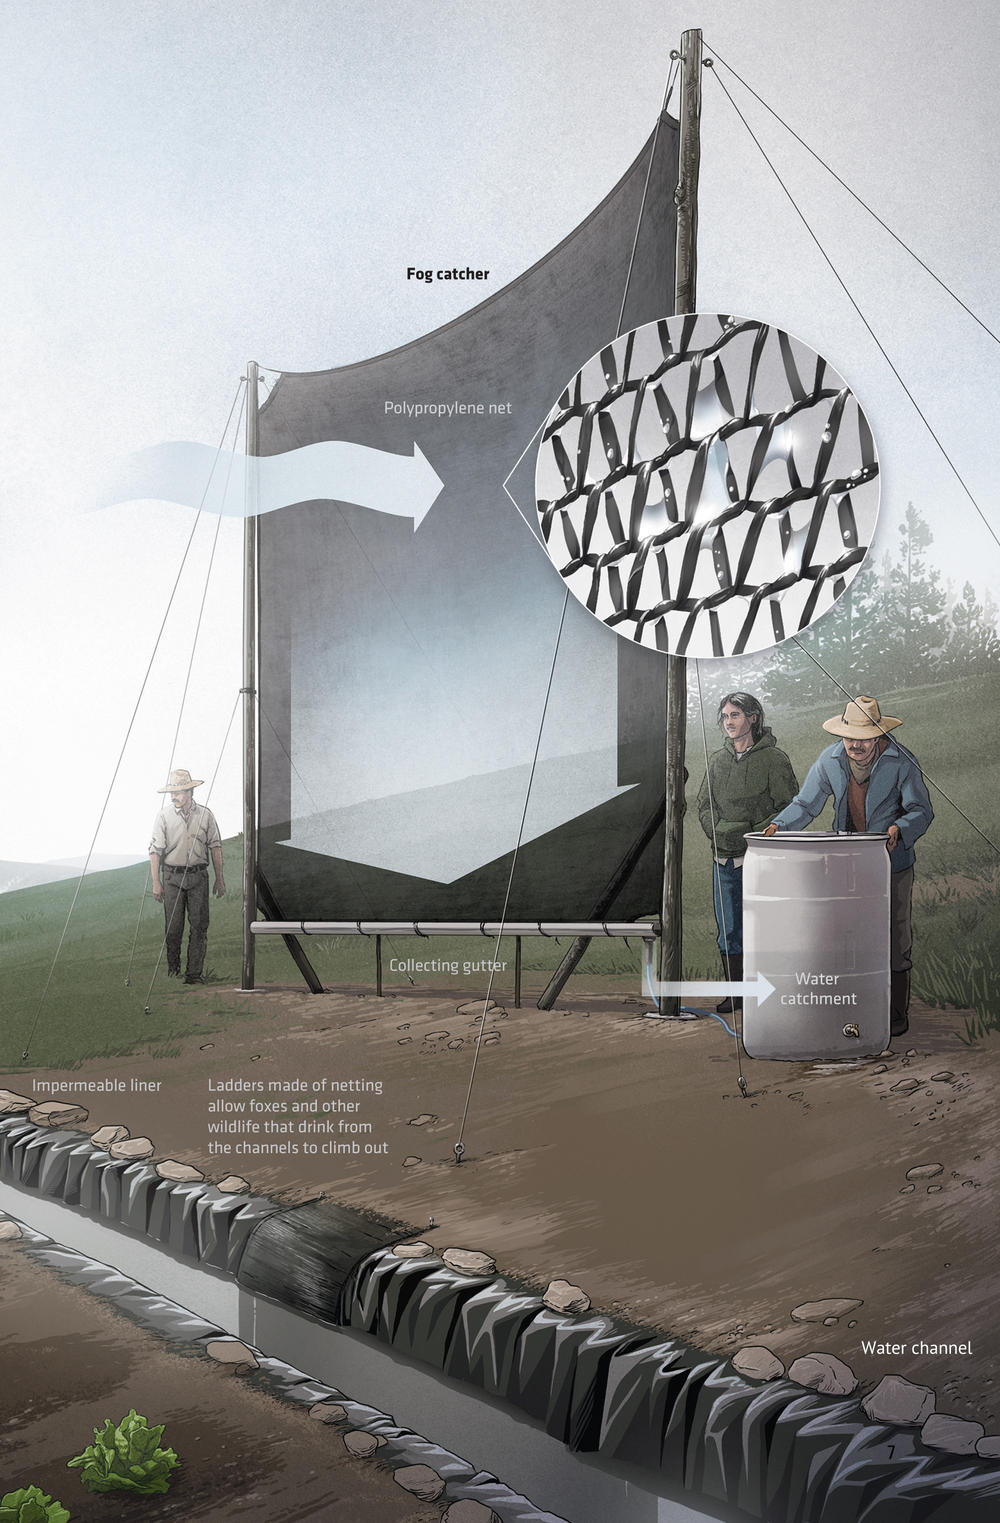 Harnessing Fog Could Help Farmers In A Changing Climate Magazine